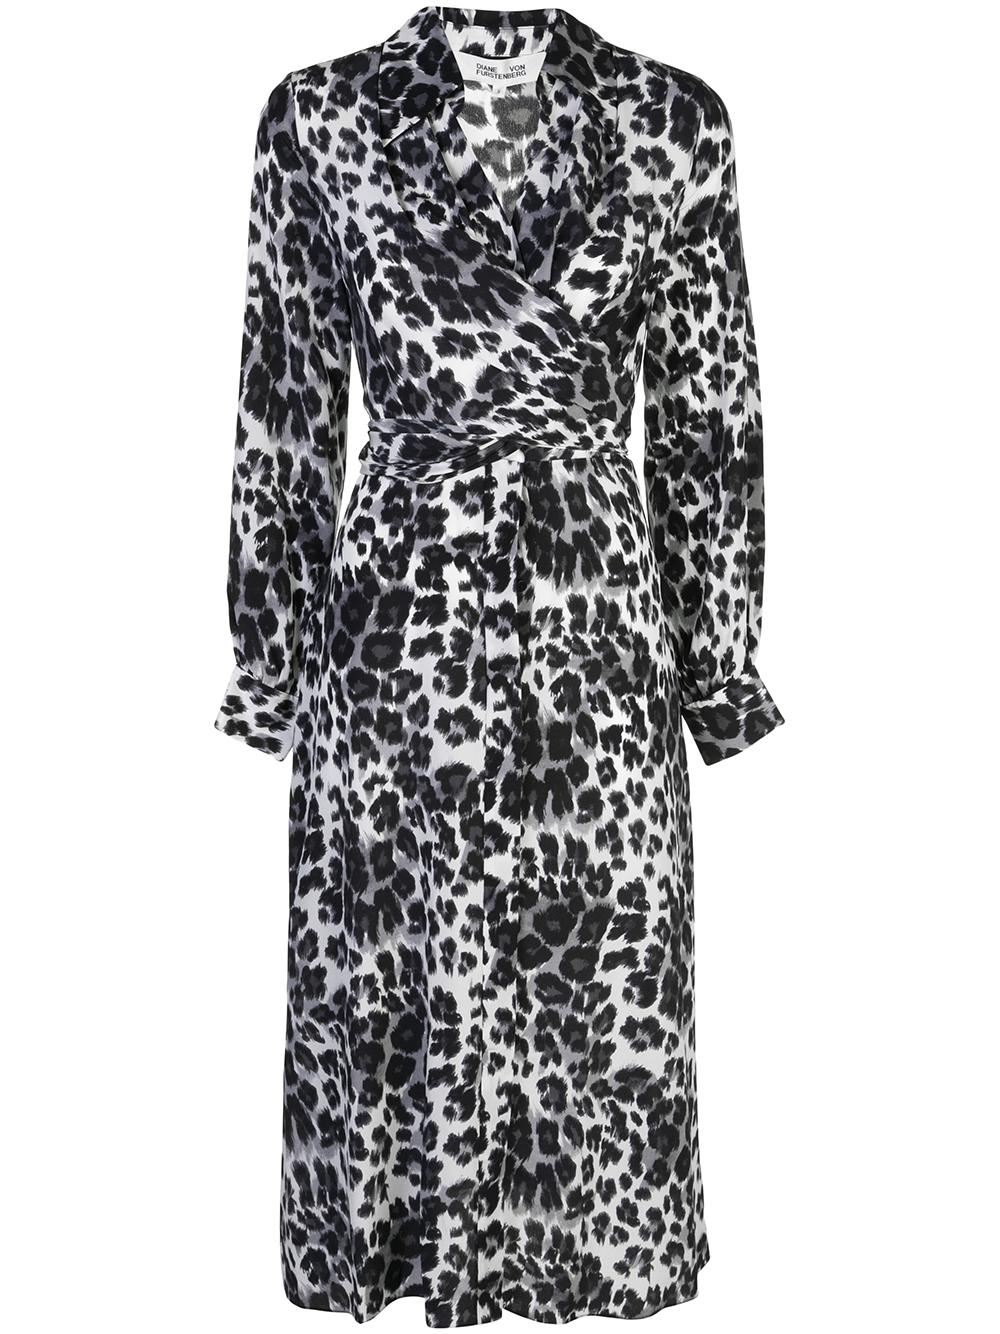 Donika Collar Leopard Dress